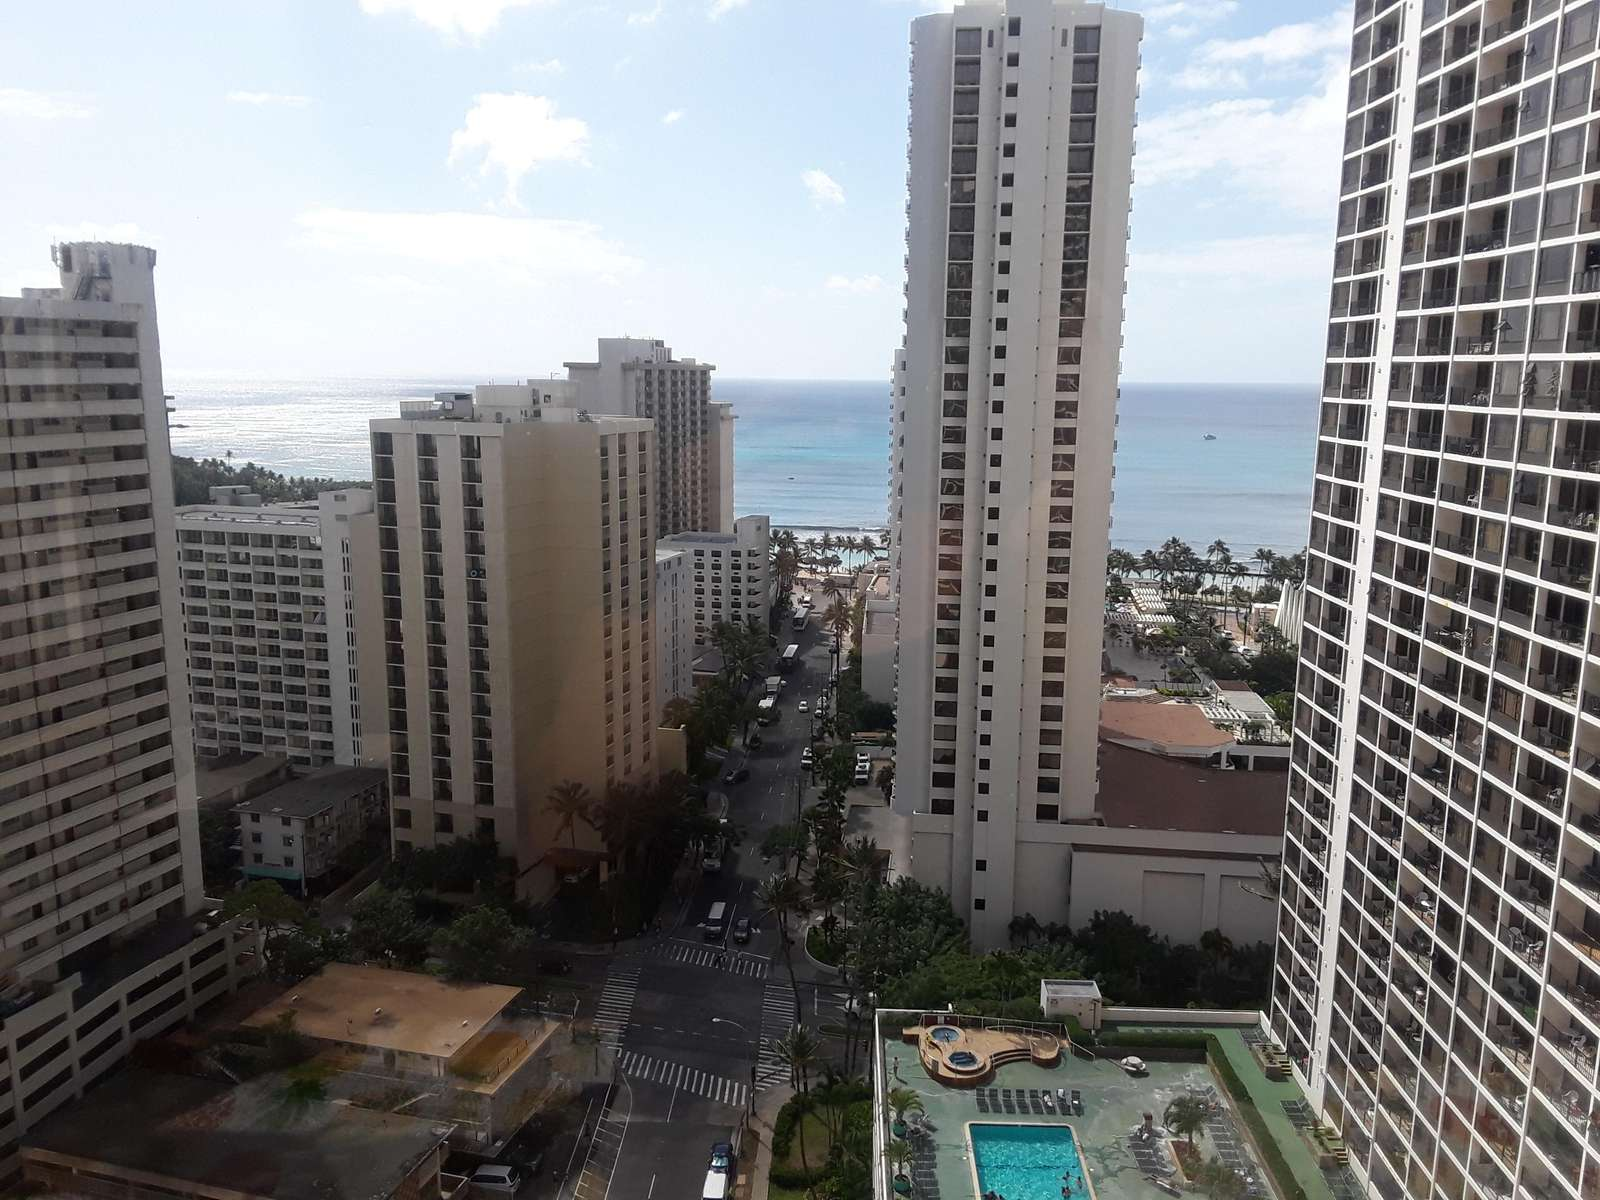 the view from the lanai